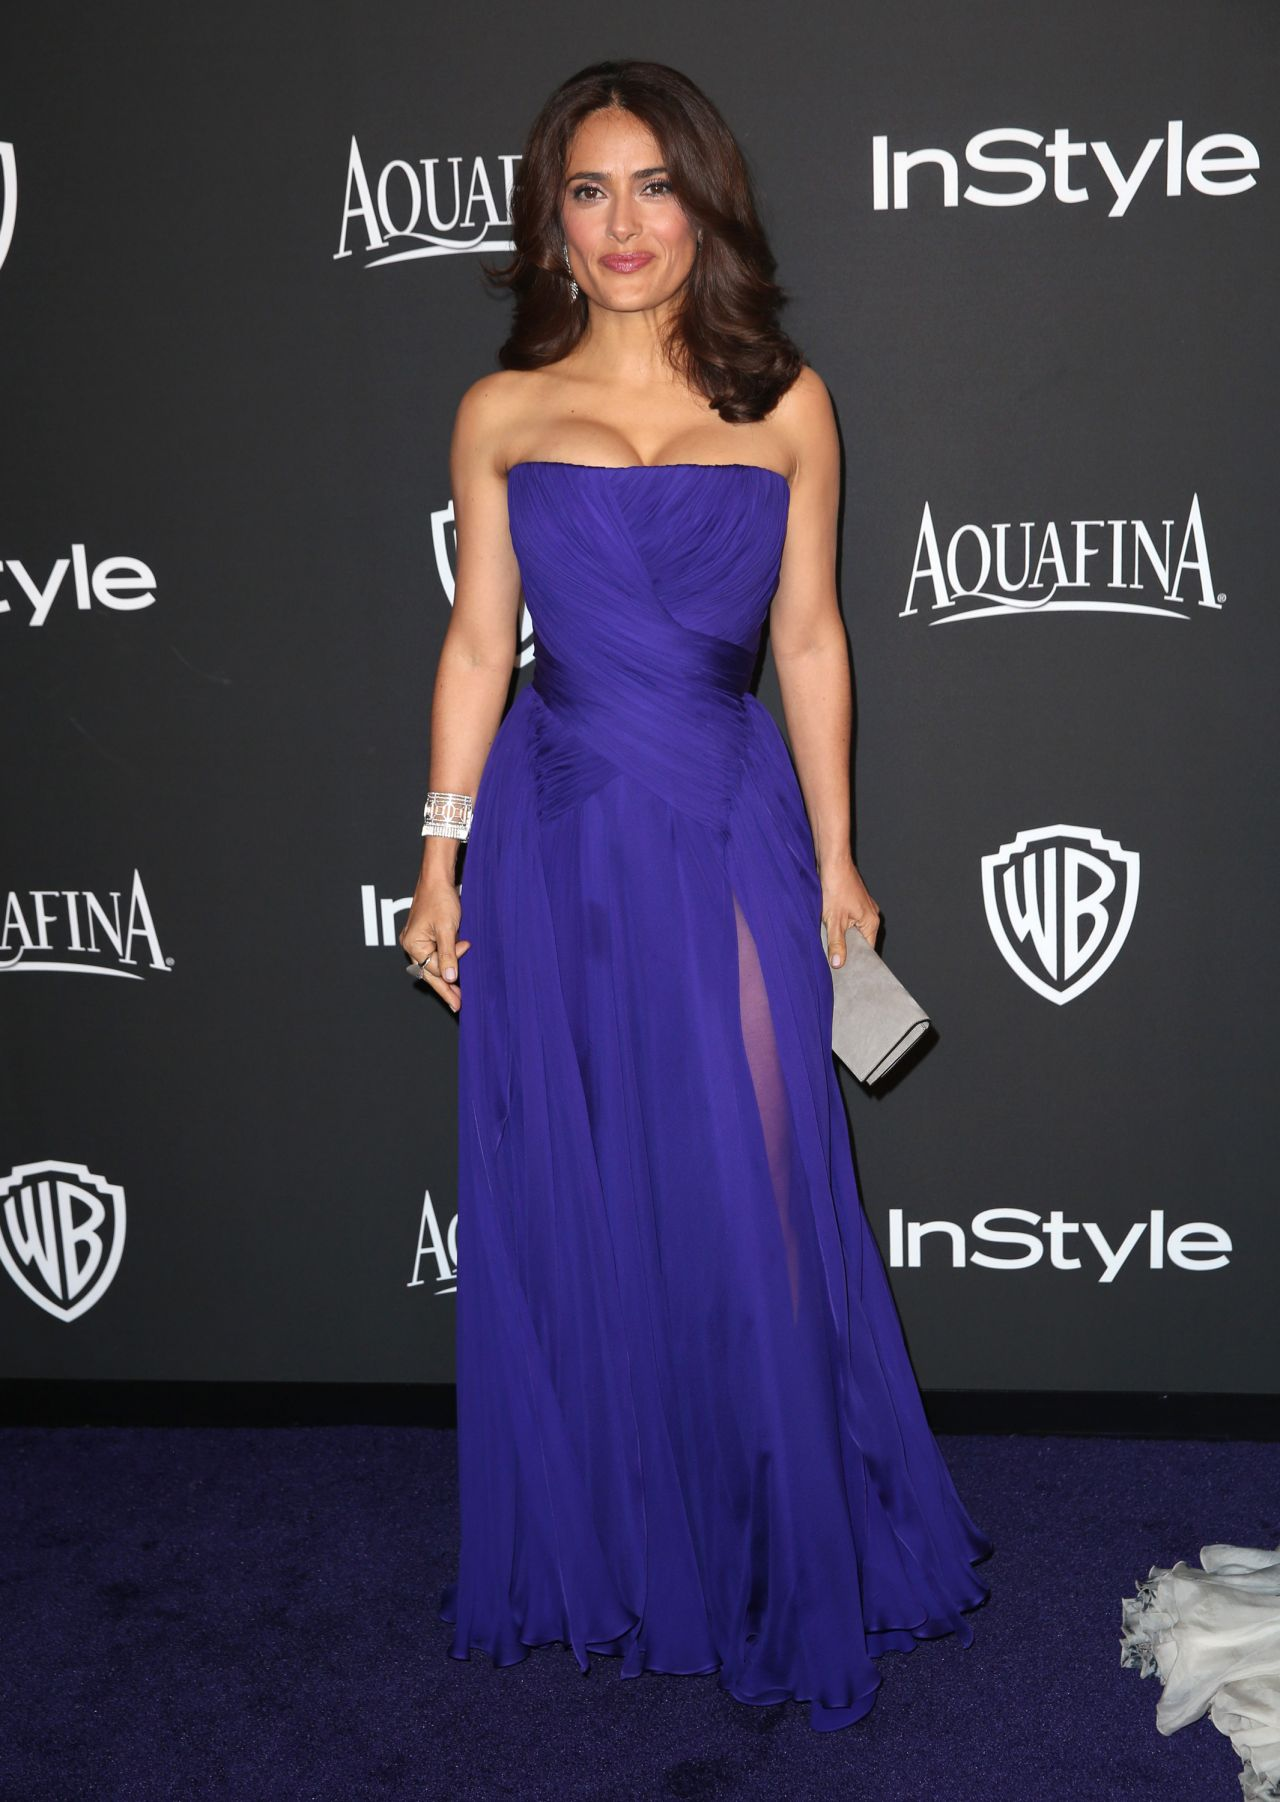 Salma Hayek Royal Blue Evening Gown 2017 Instyle And Warner Bros Golden Globe Awards Post Party Thecelebritydresses